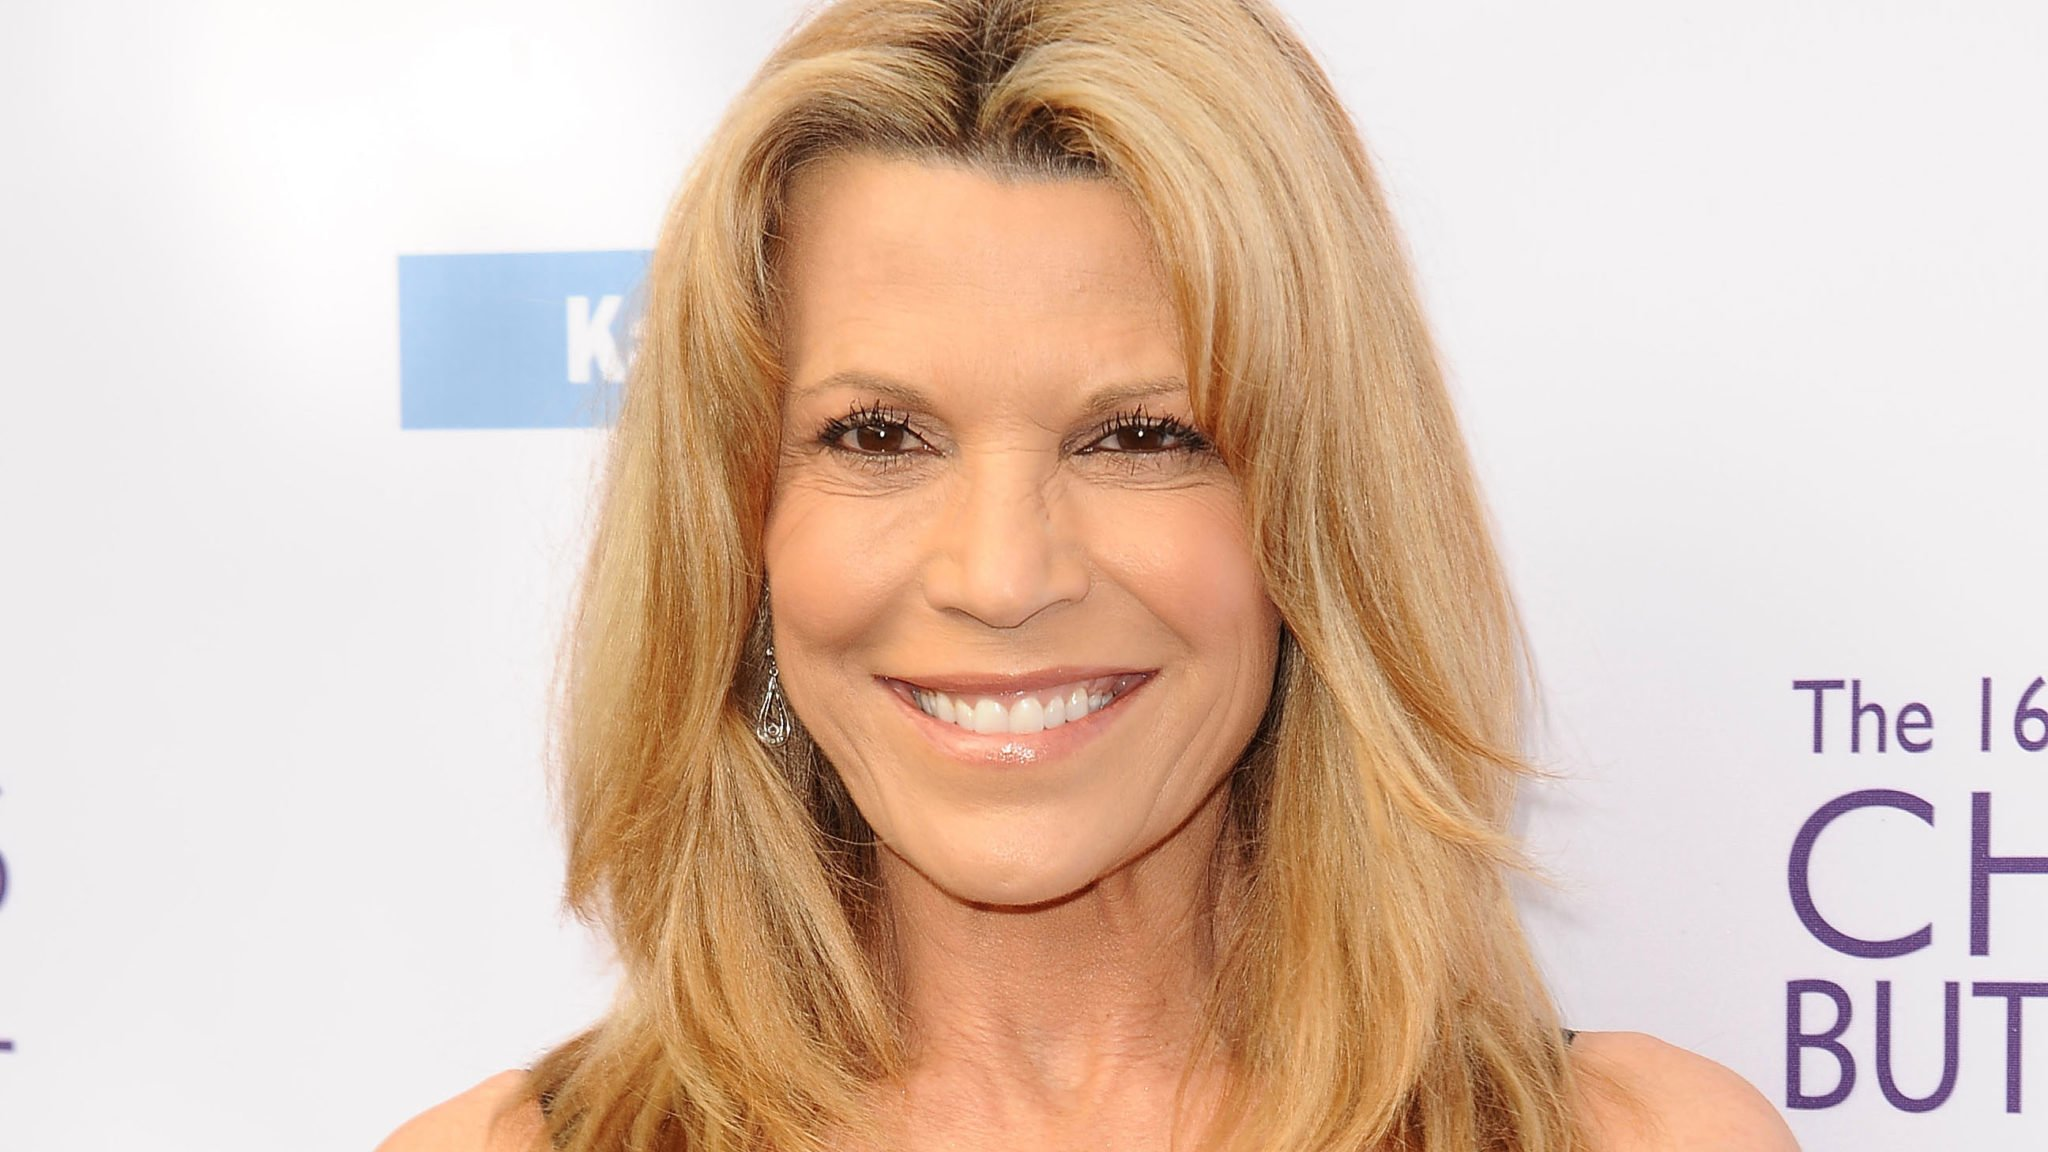 Vanna White Salary, Net Worth, Married, Children, Husband, Family, Bio